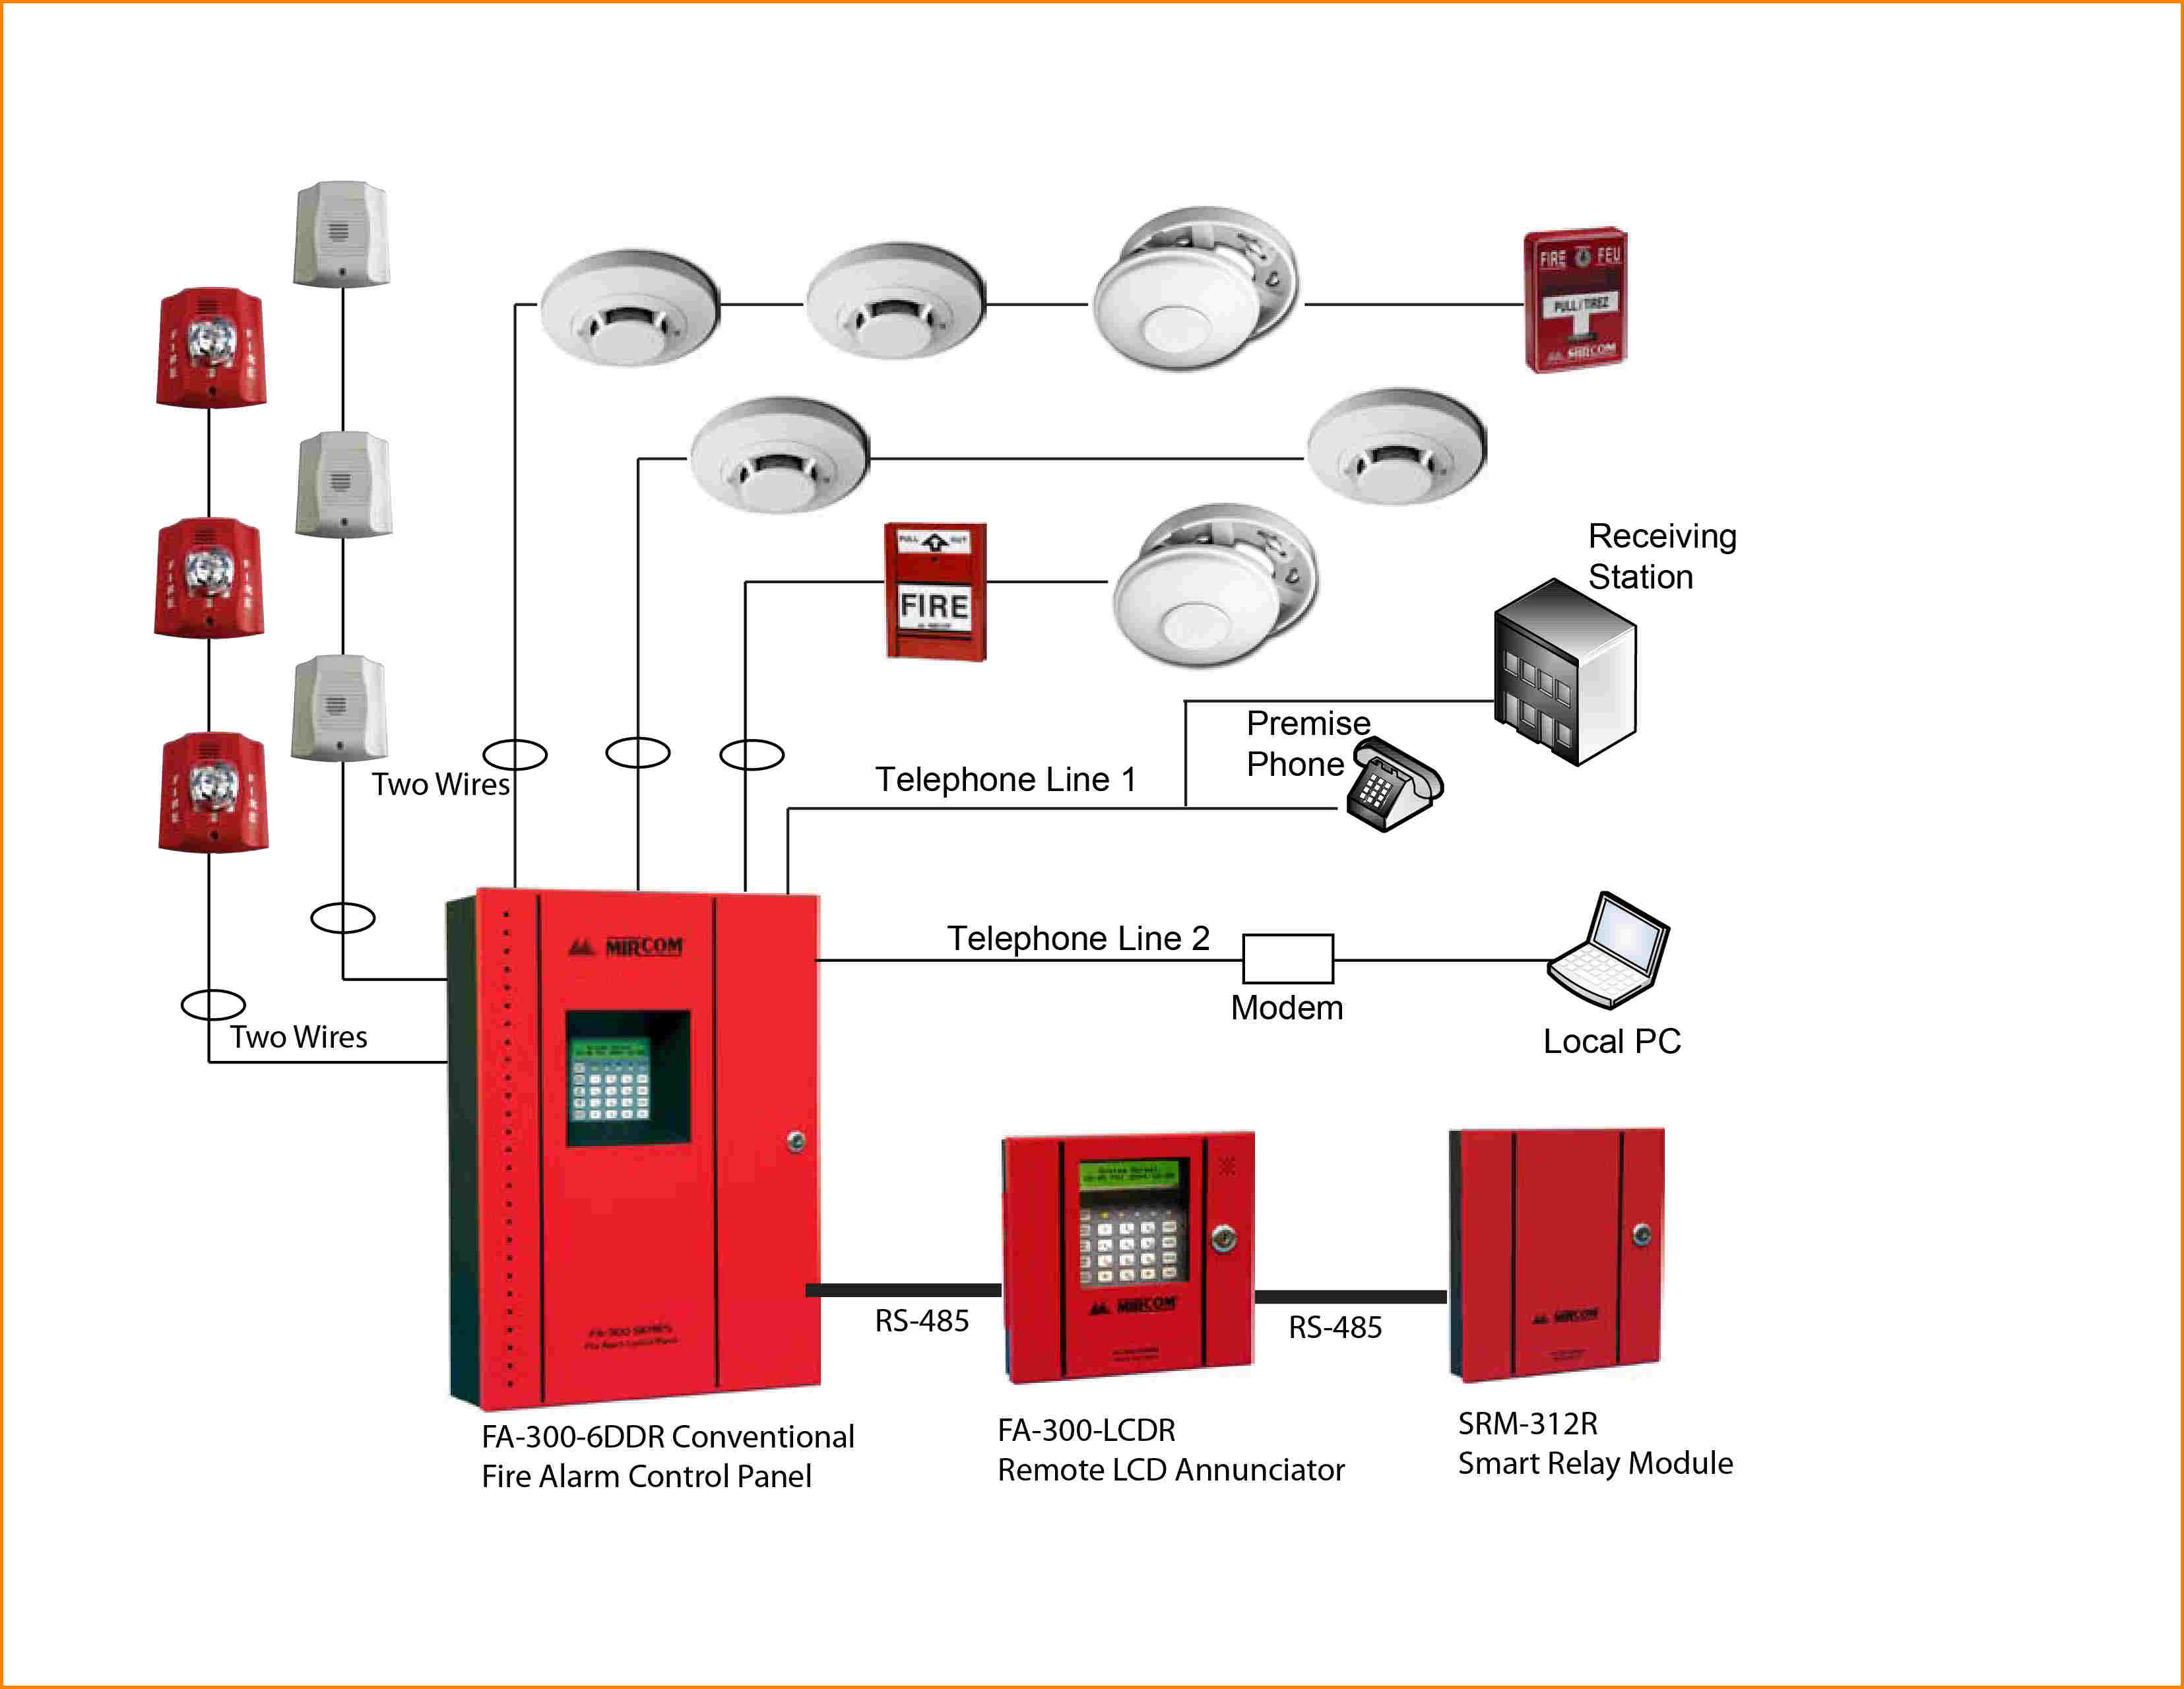 fire alarm wiring diagram Download-10 Addressable Fire Alarm System Wiring Diagram Car Harness Within And Fire Alarm Wiring Diagram 4-s